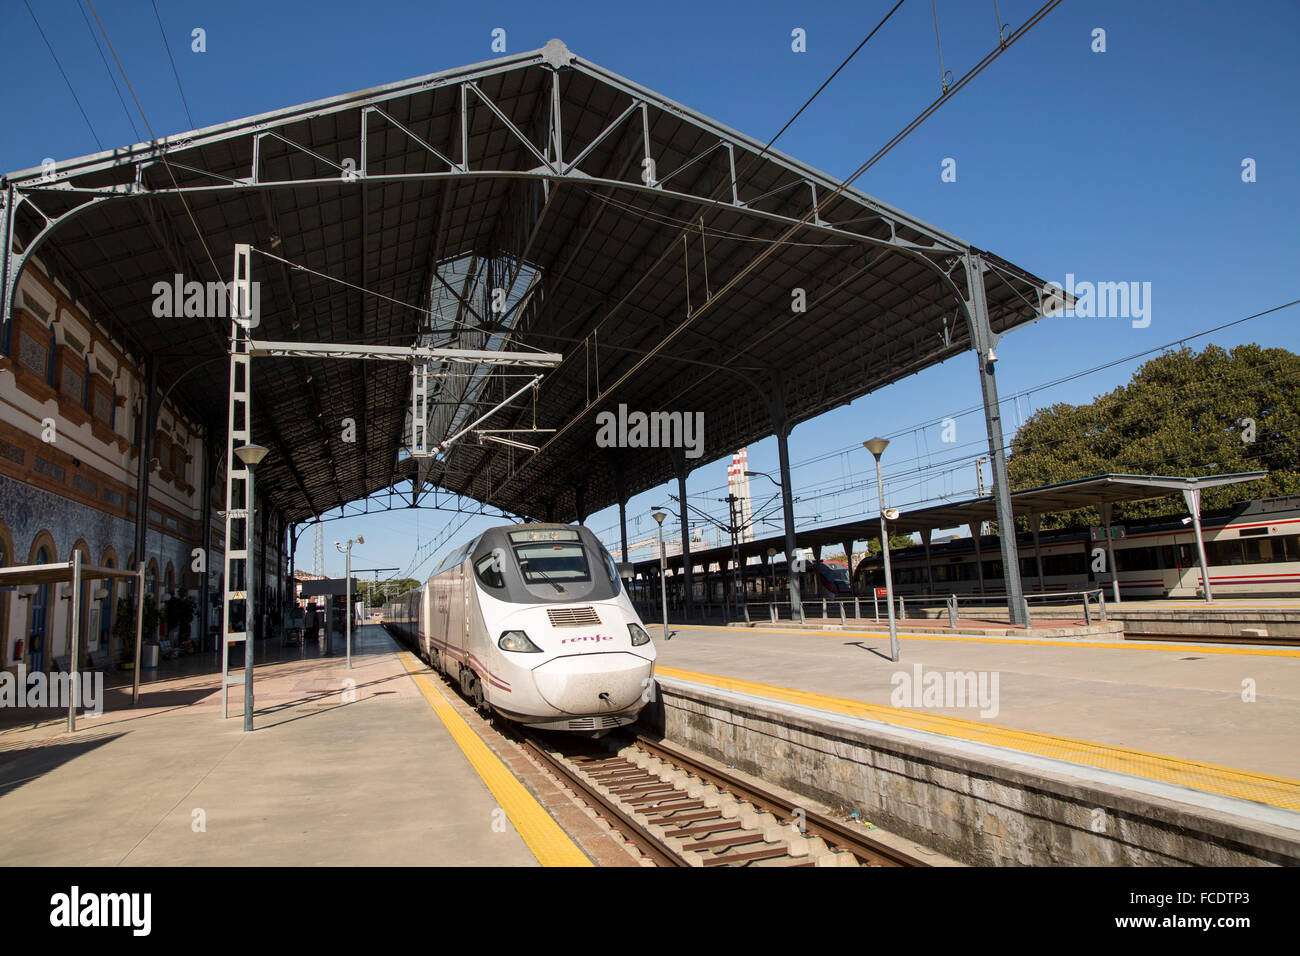 RENFE train at platform railway station, Jerez de la Frontera, Spain - Stock Image